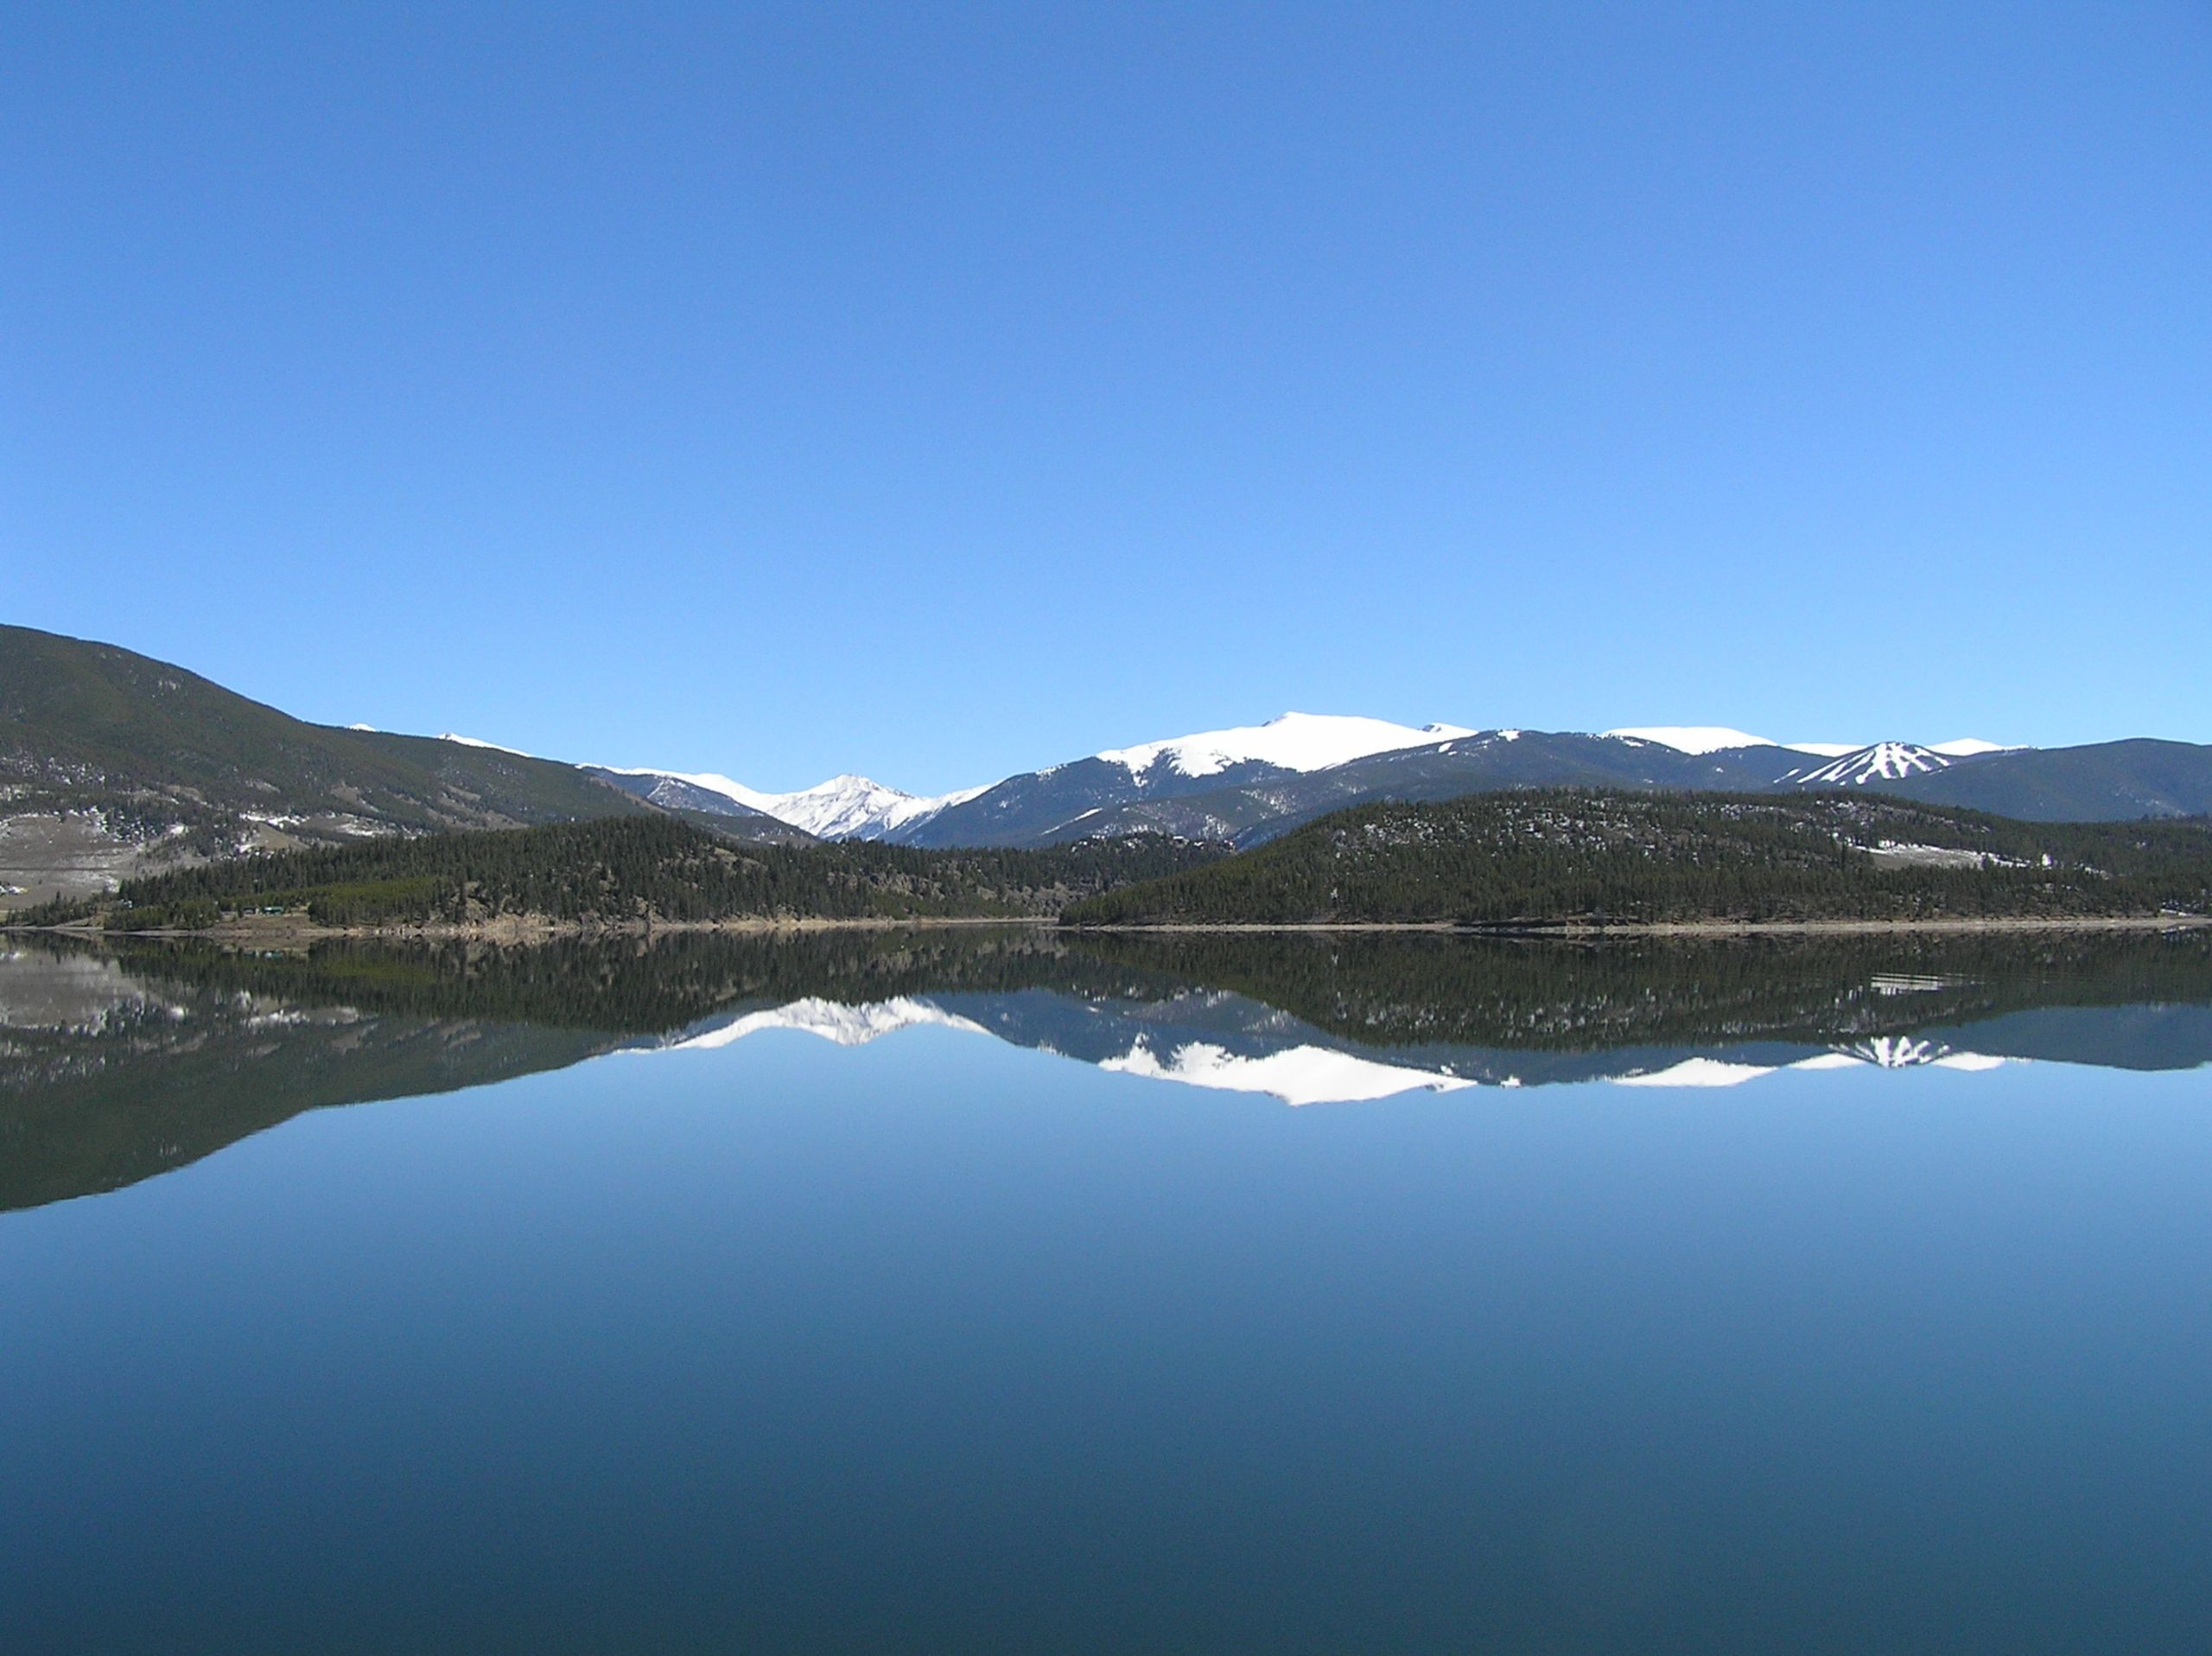 The looking glass of Lake Dillon.